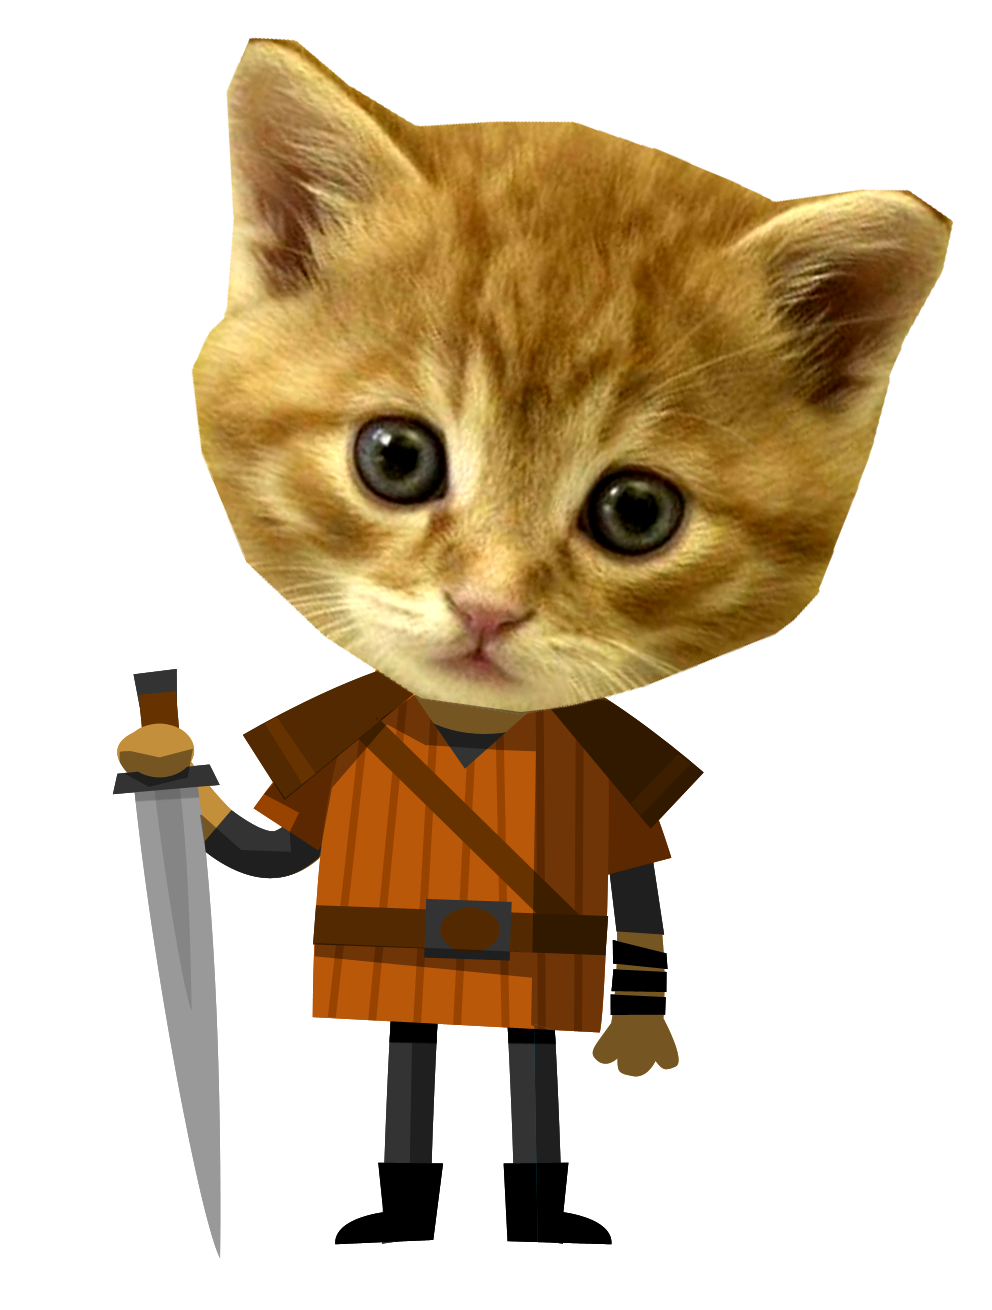 kitten-medieval-flat-copy-2.png